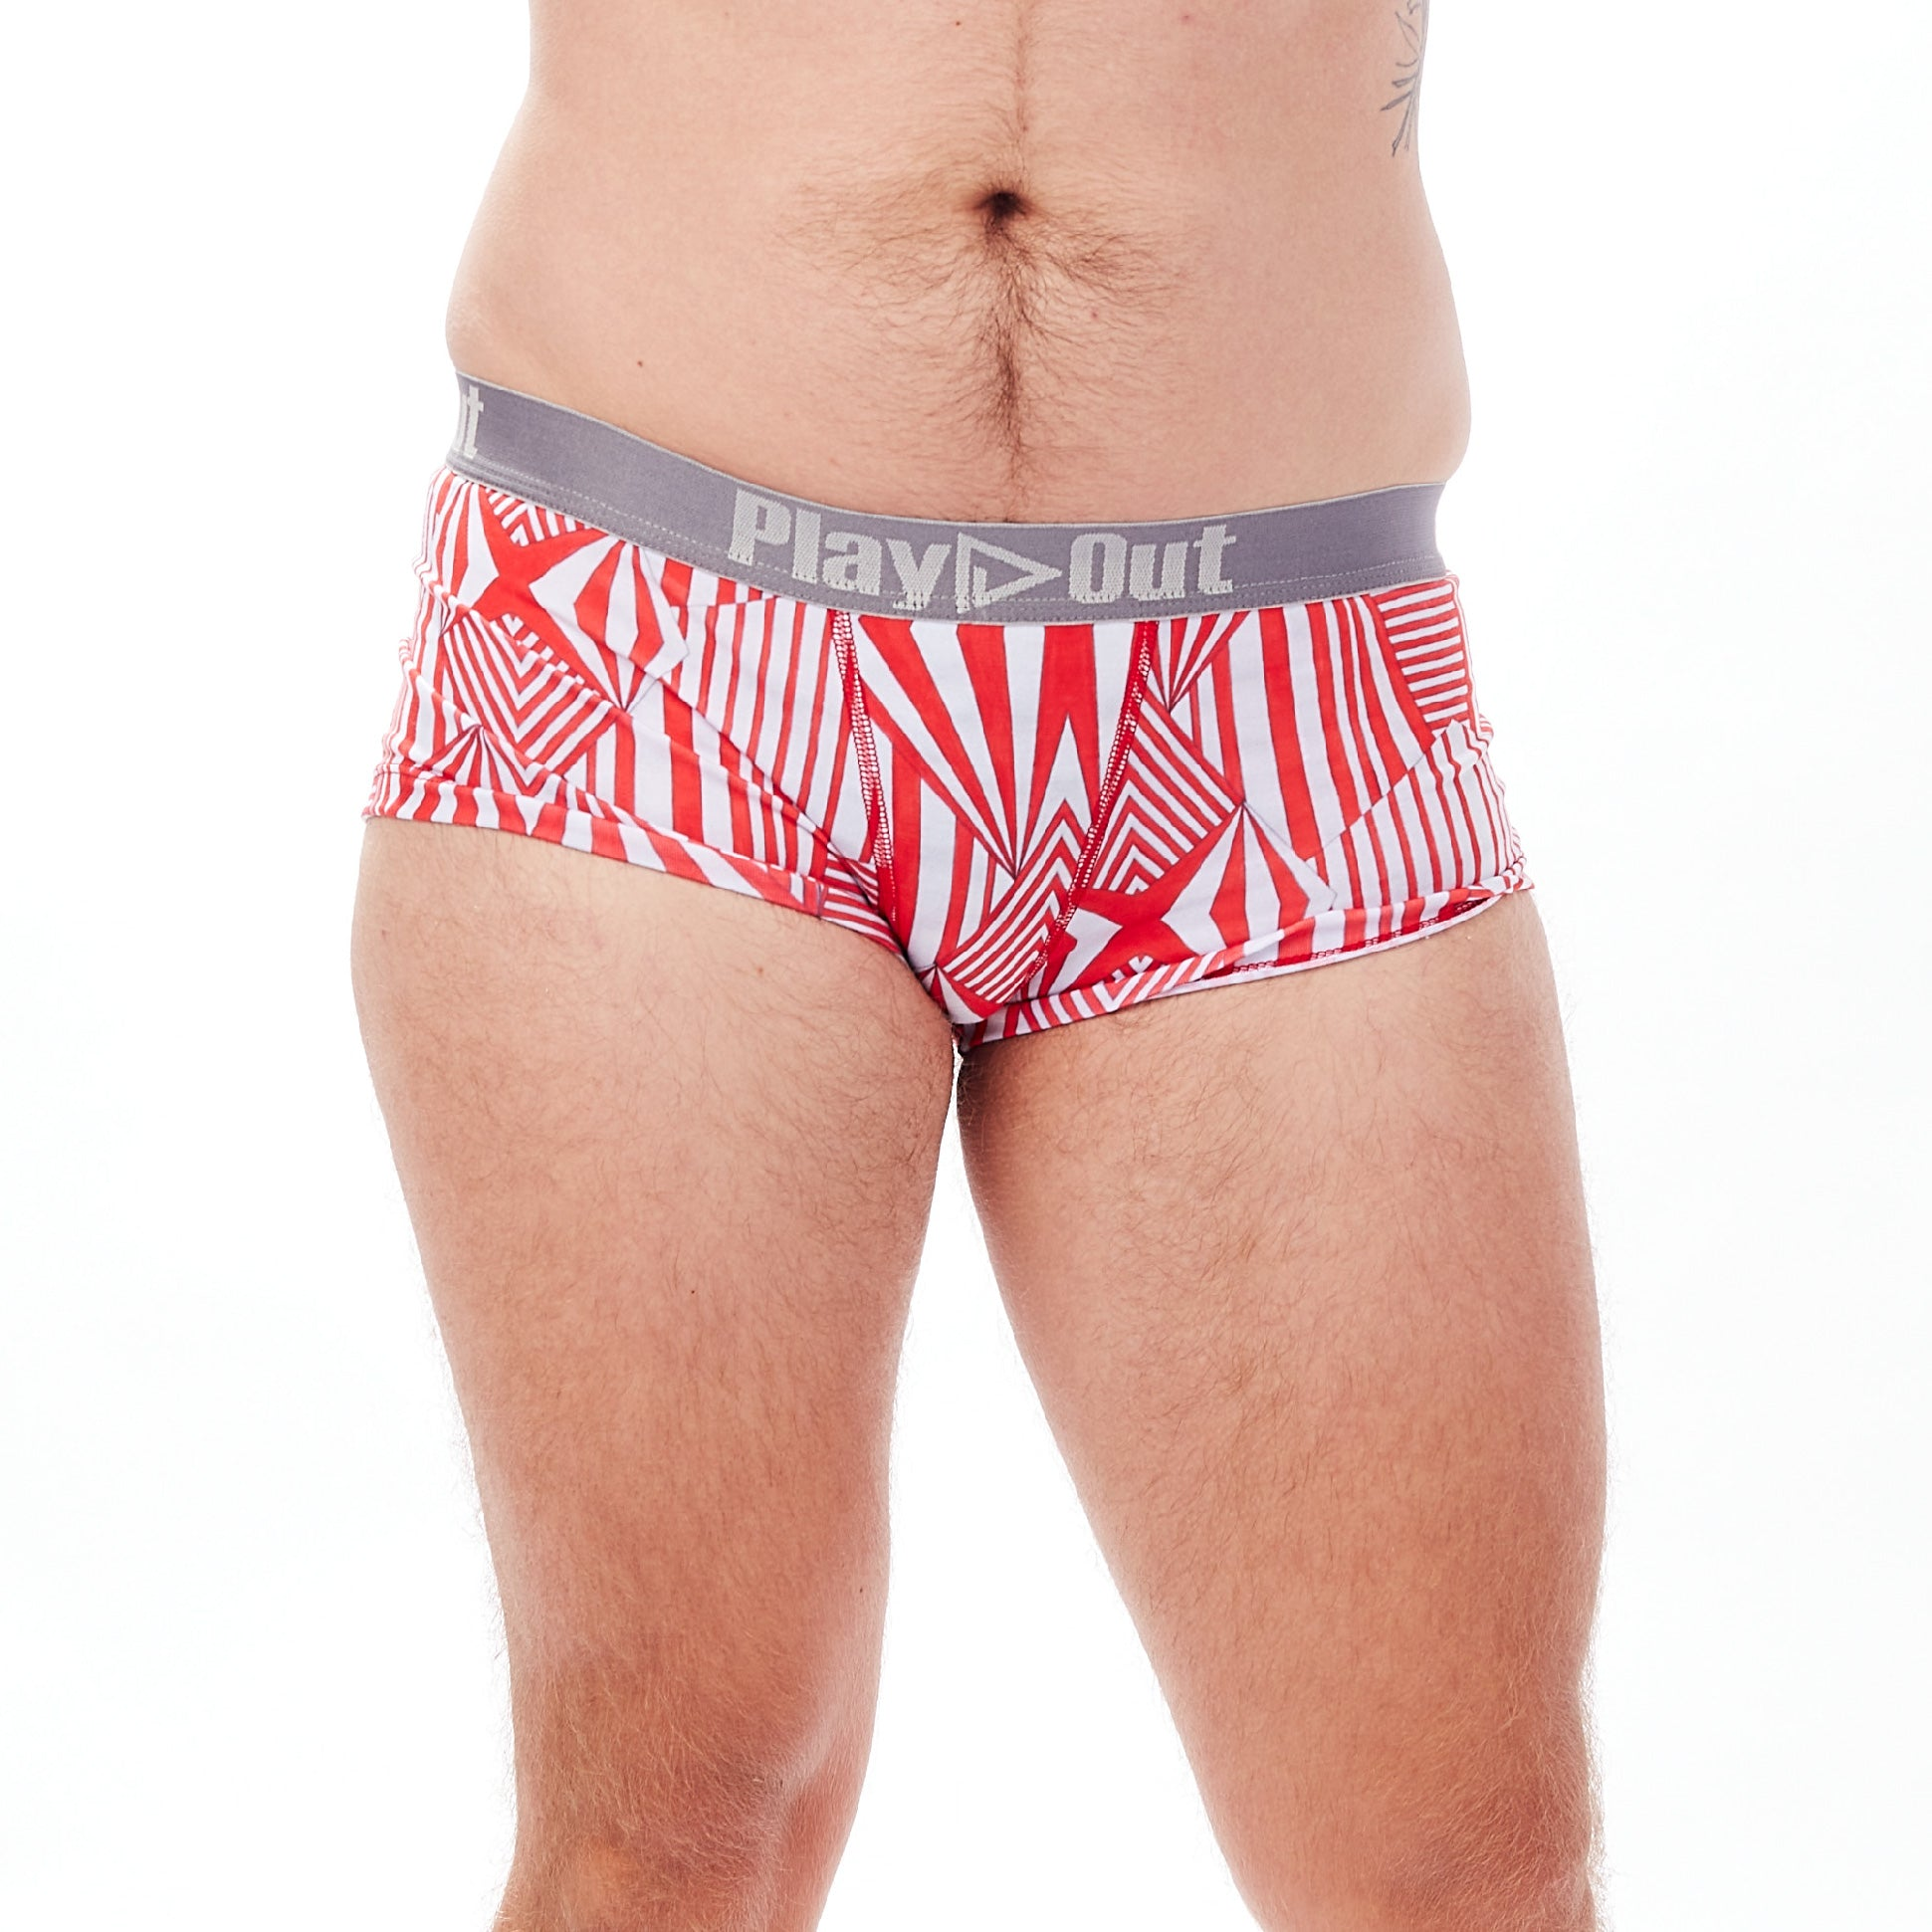 Play Out Apparel Boxer Brief in Mazie red and white print front S-5X